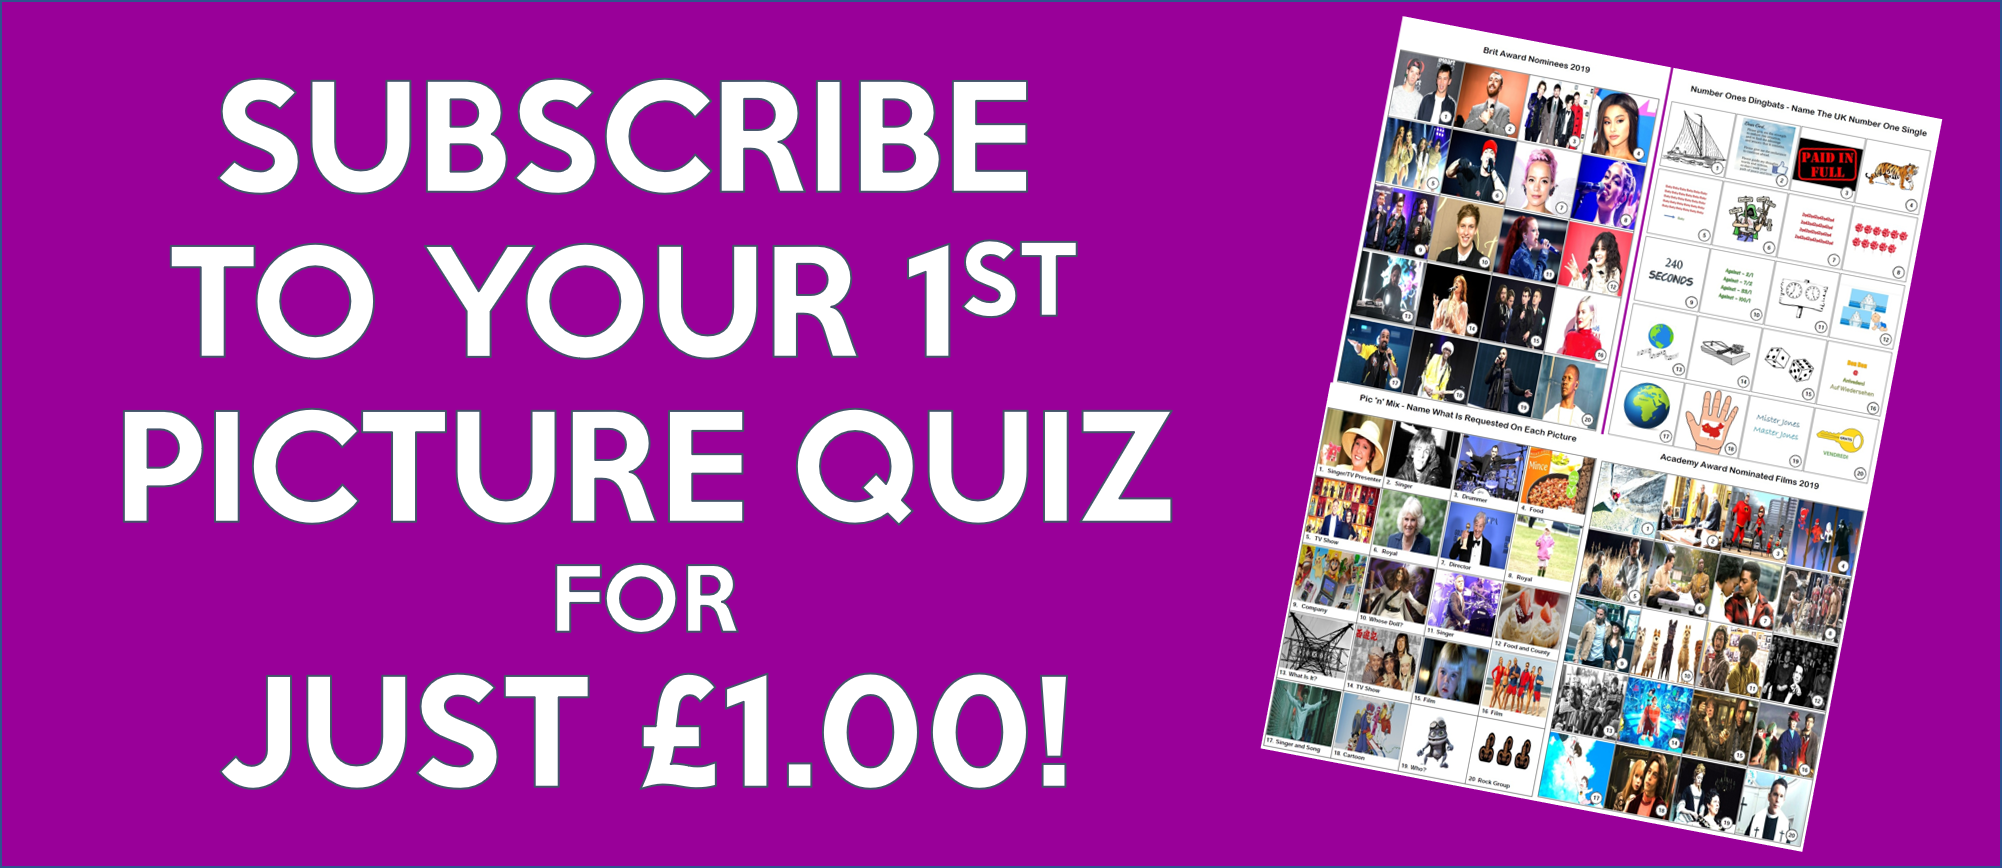 20 Picture Quizzes - Pay Monthly